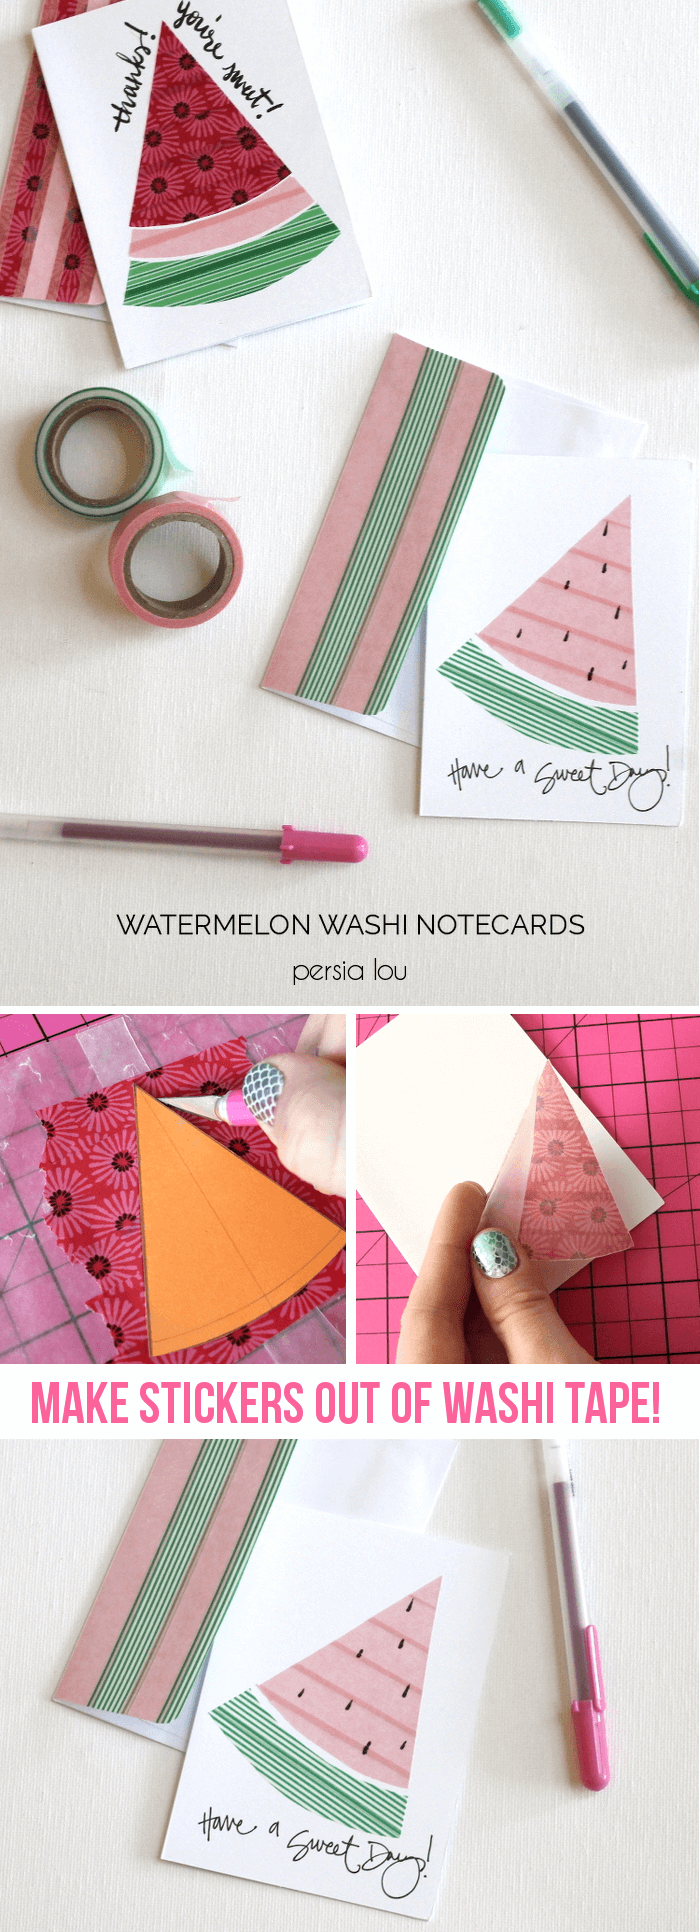 Watermelon Washi Tape NotecardsPersia Lou